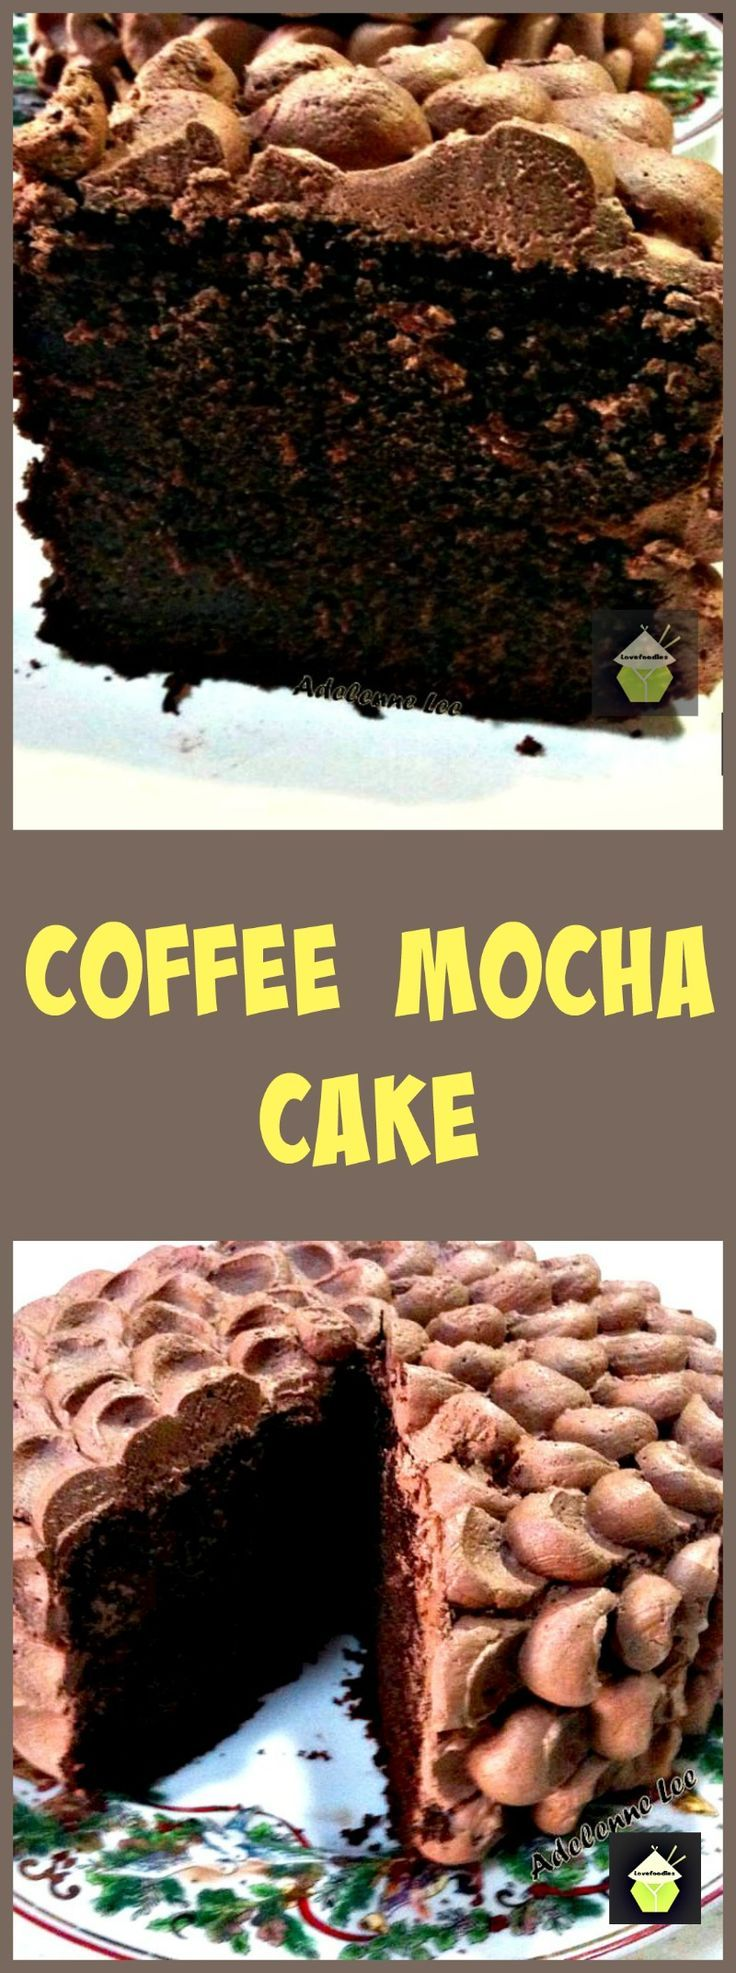 17 Best ideas about Mocha Cake on Pinterest | Moist coffee cake recipe ...